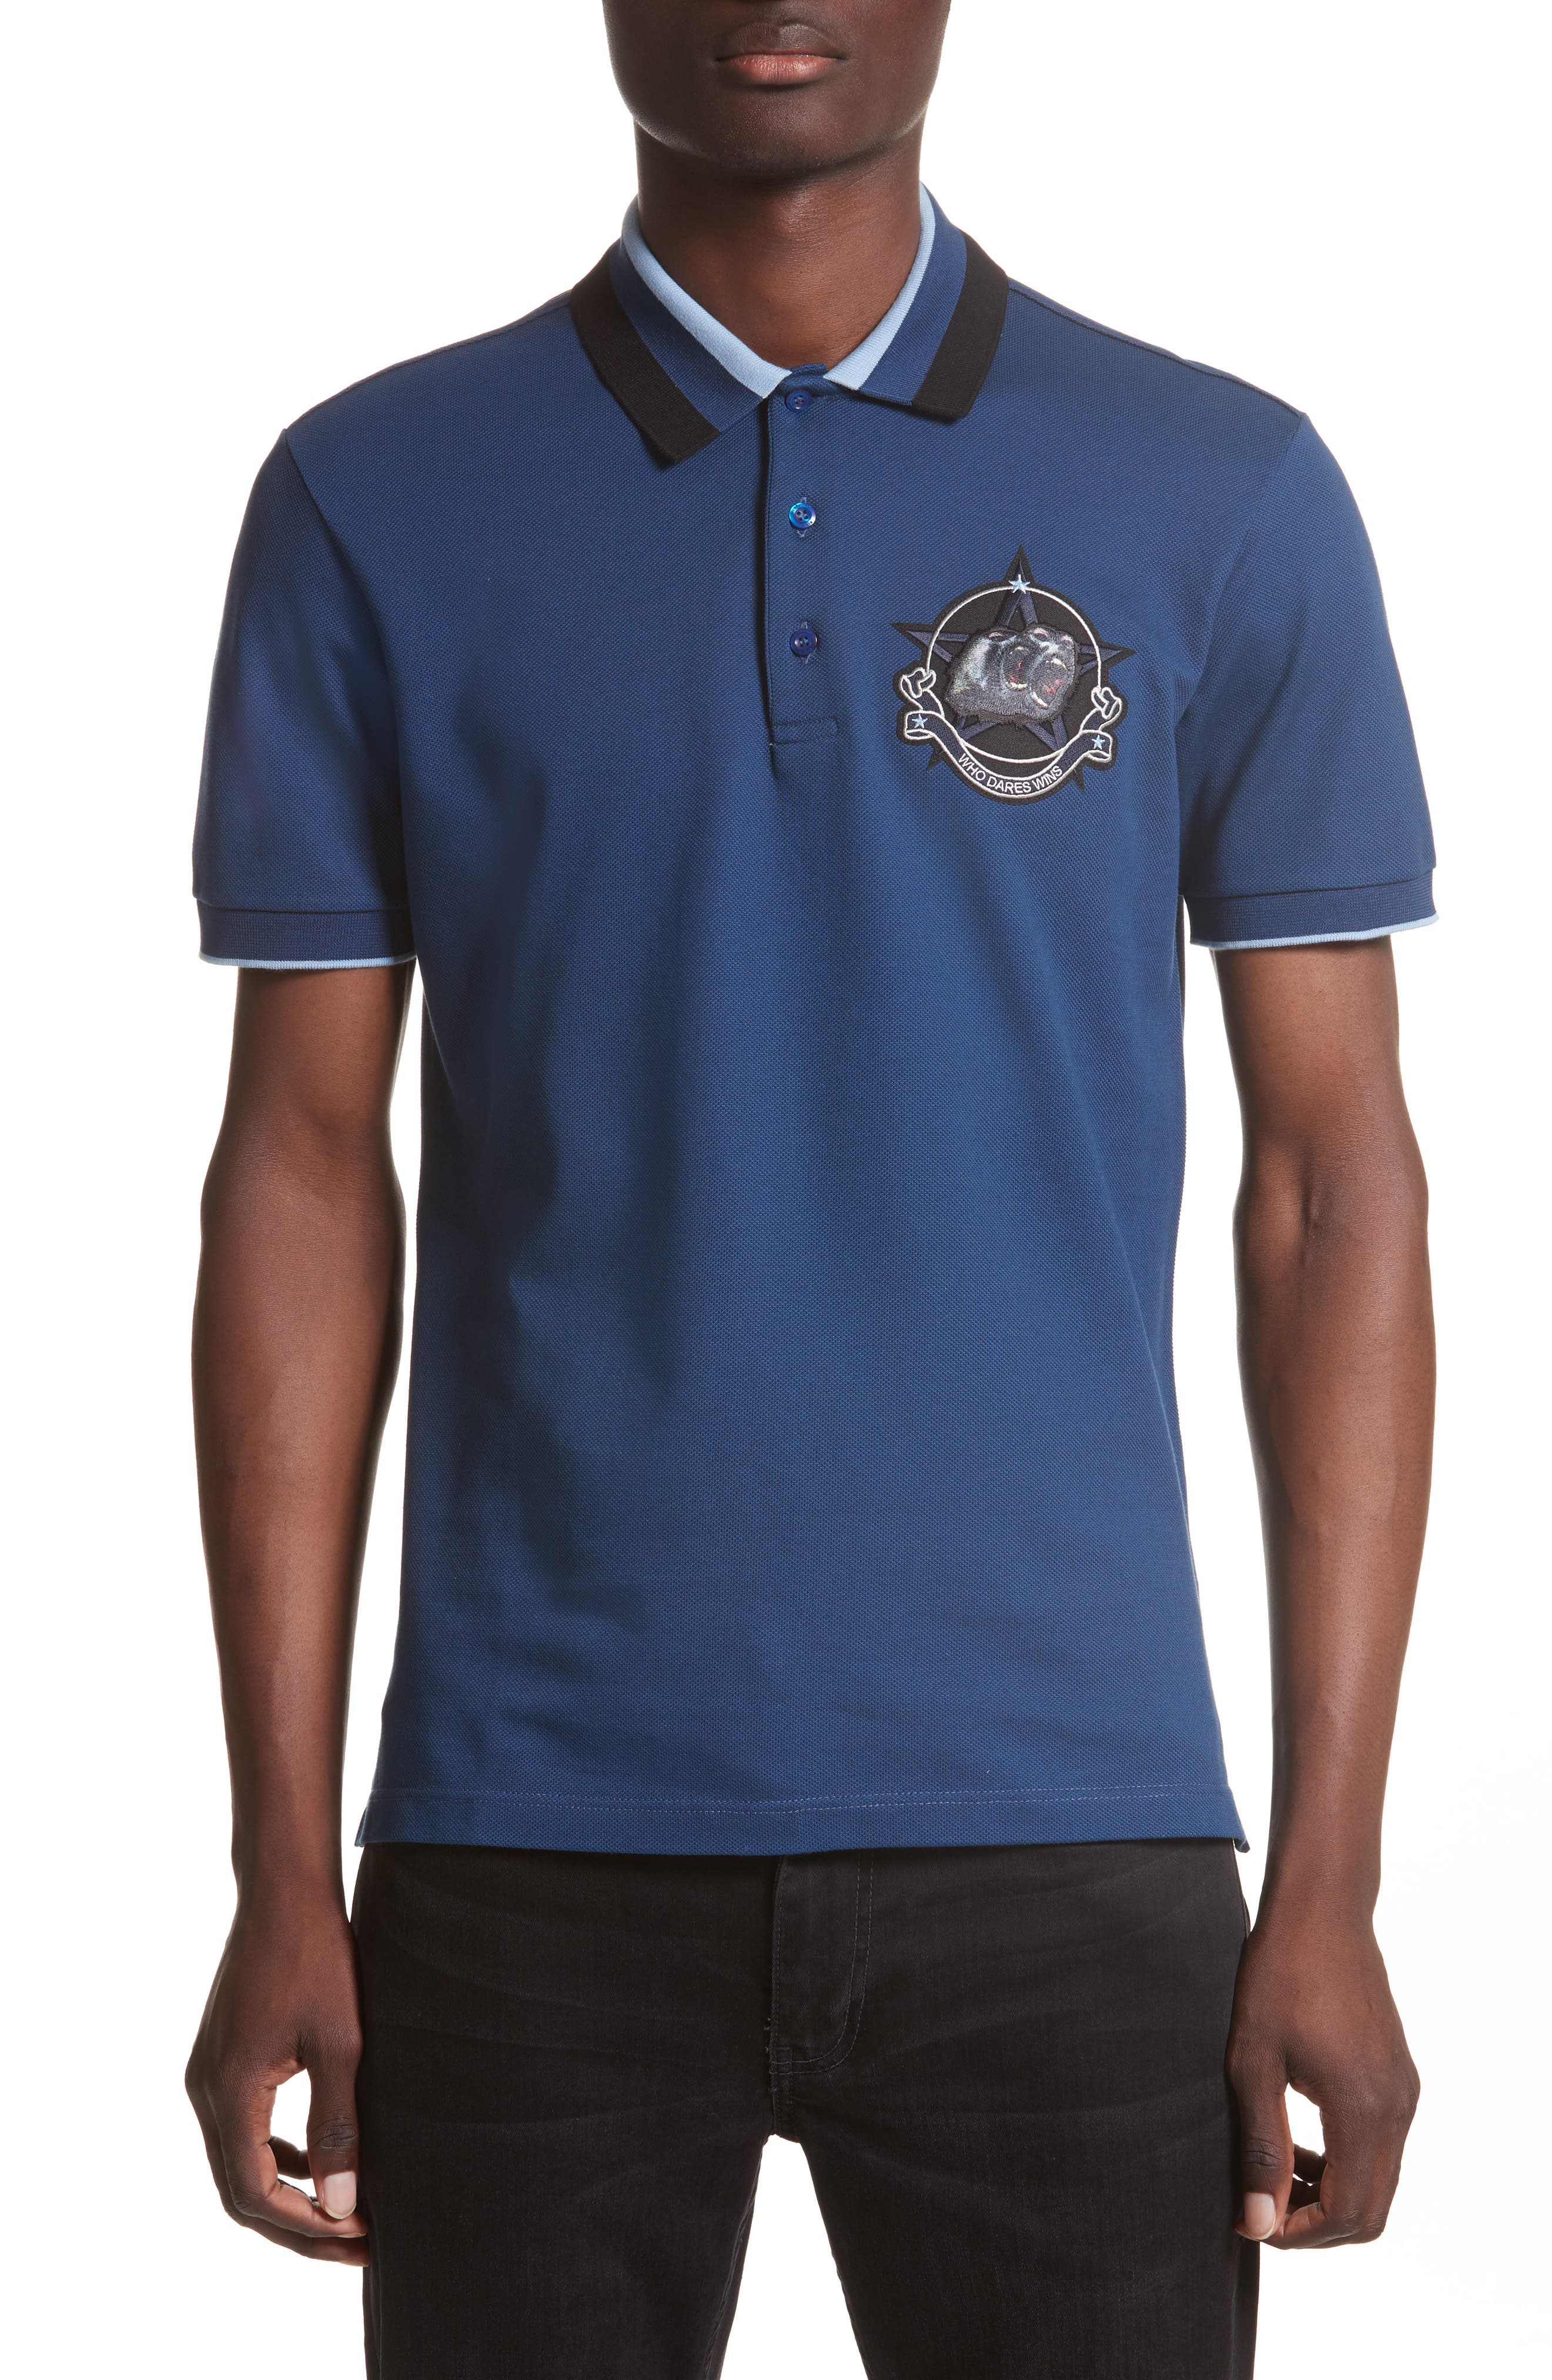 Givenchy Cuban Fit Monkey Patch Polo